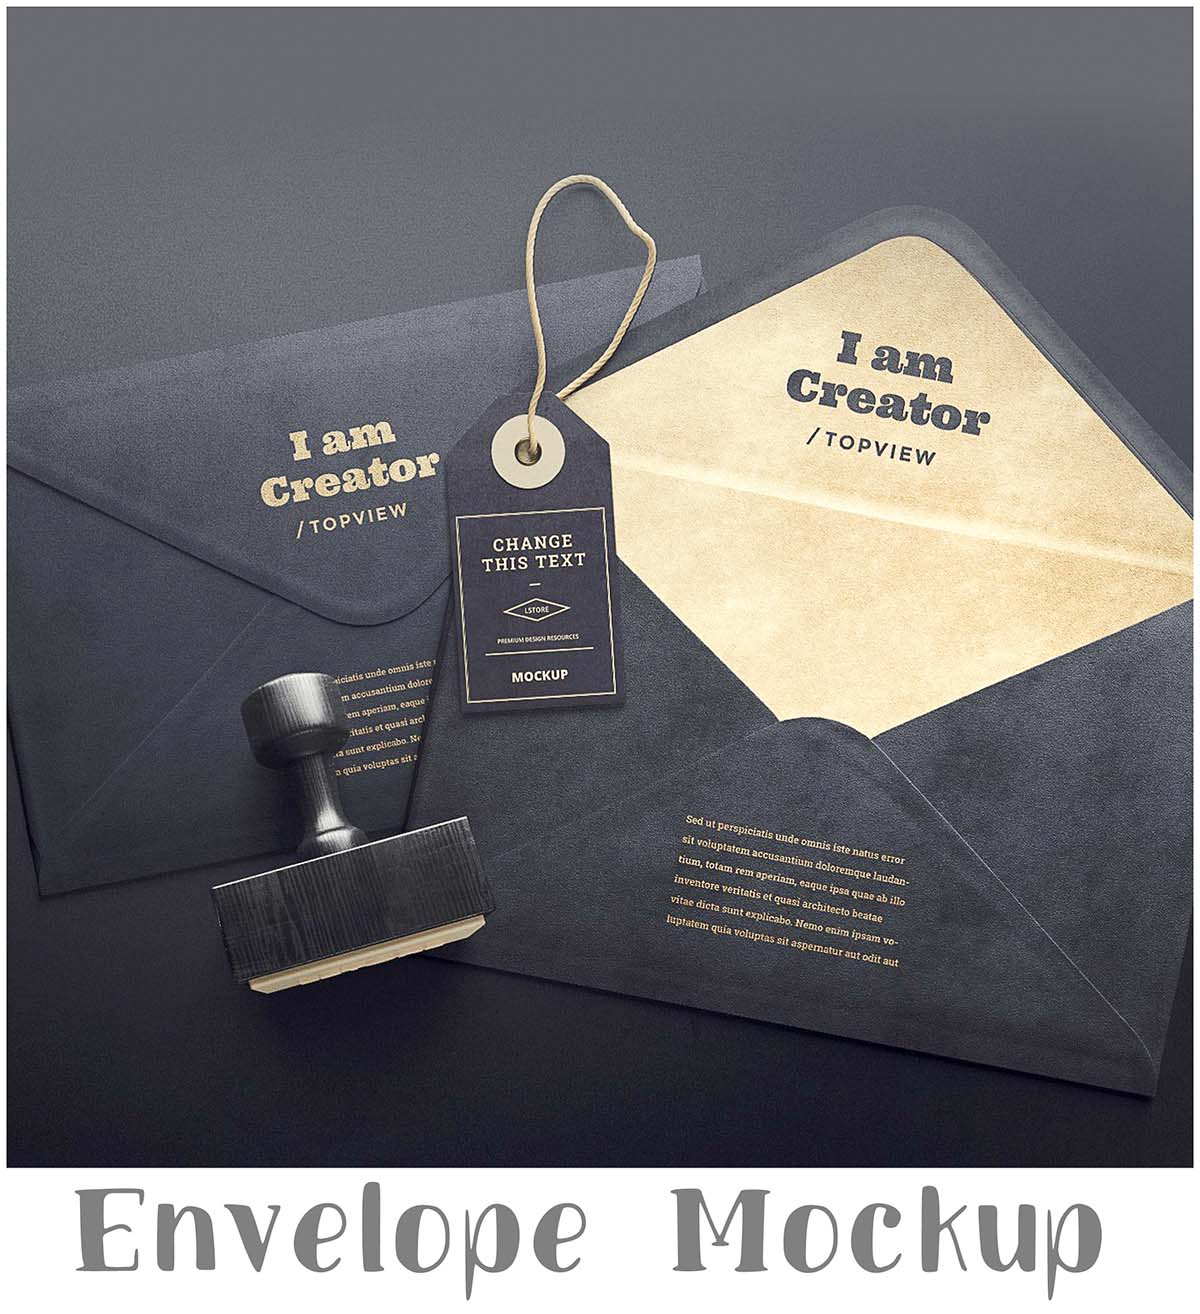 Envelope stylish mockup